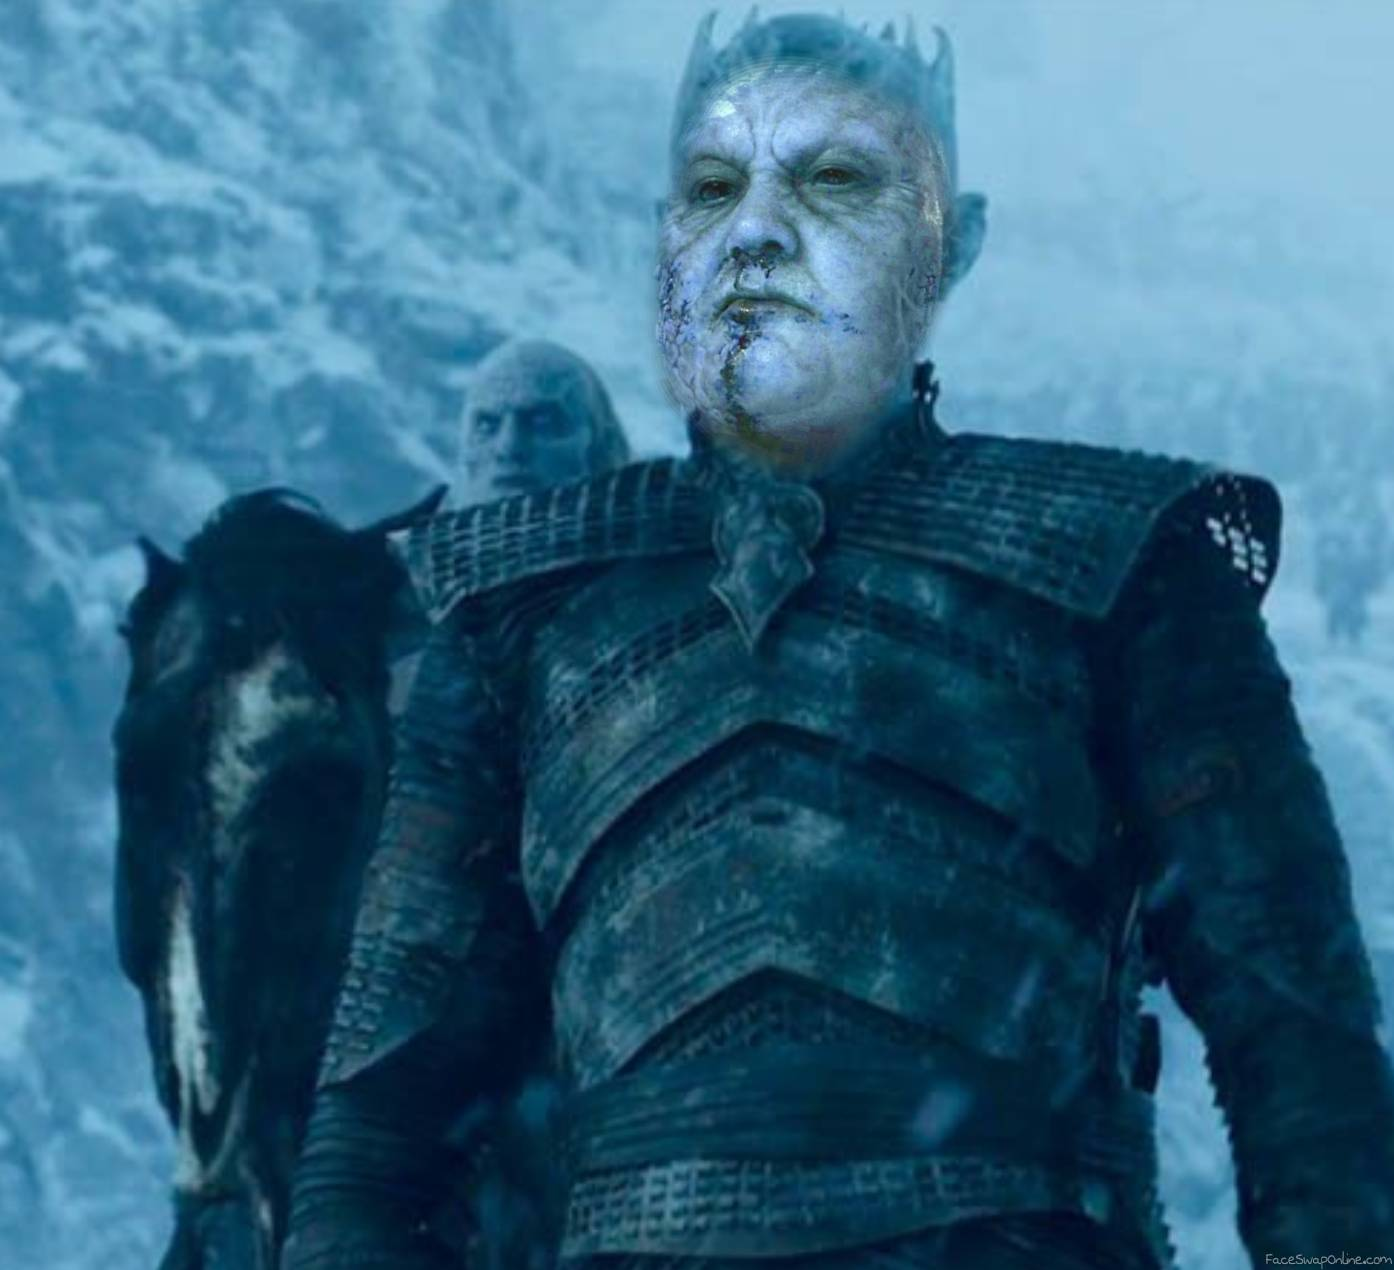 The Mountain becomes the Night King